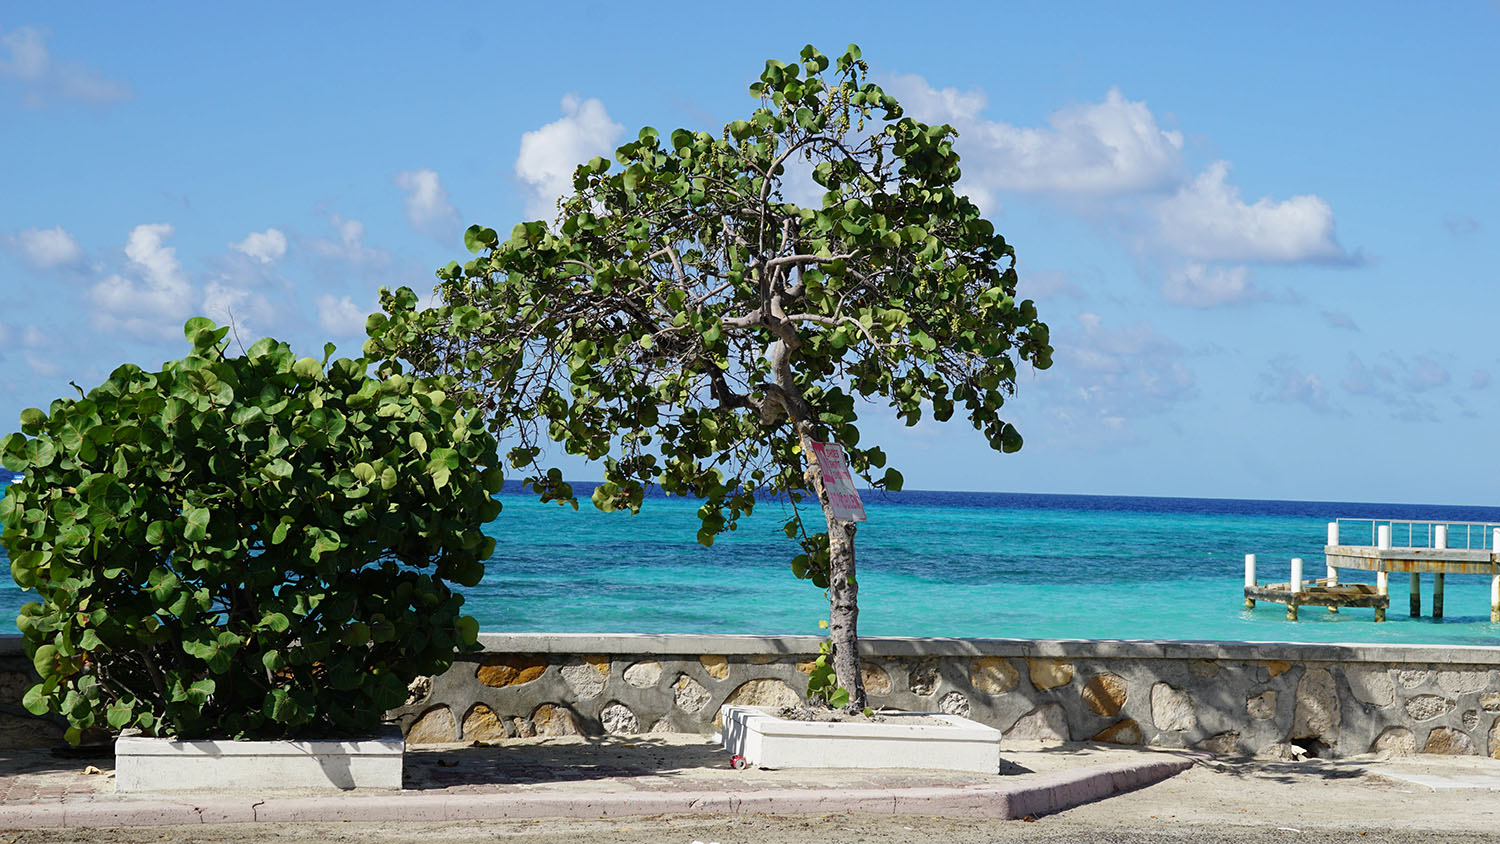 Governor's Beach in Grand Turk Island in the Turks and Caicos Islands